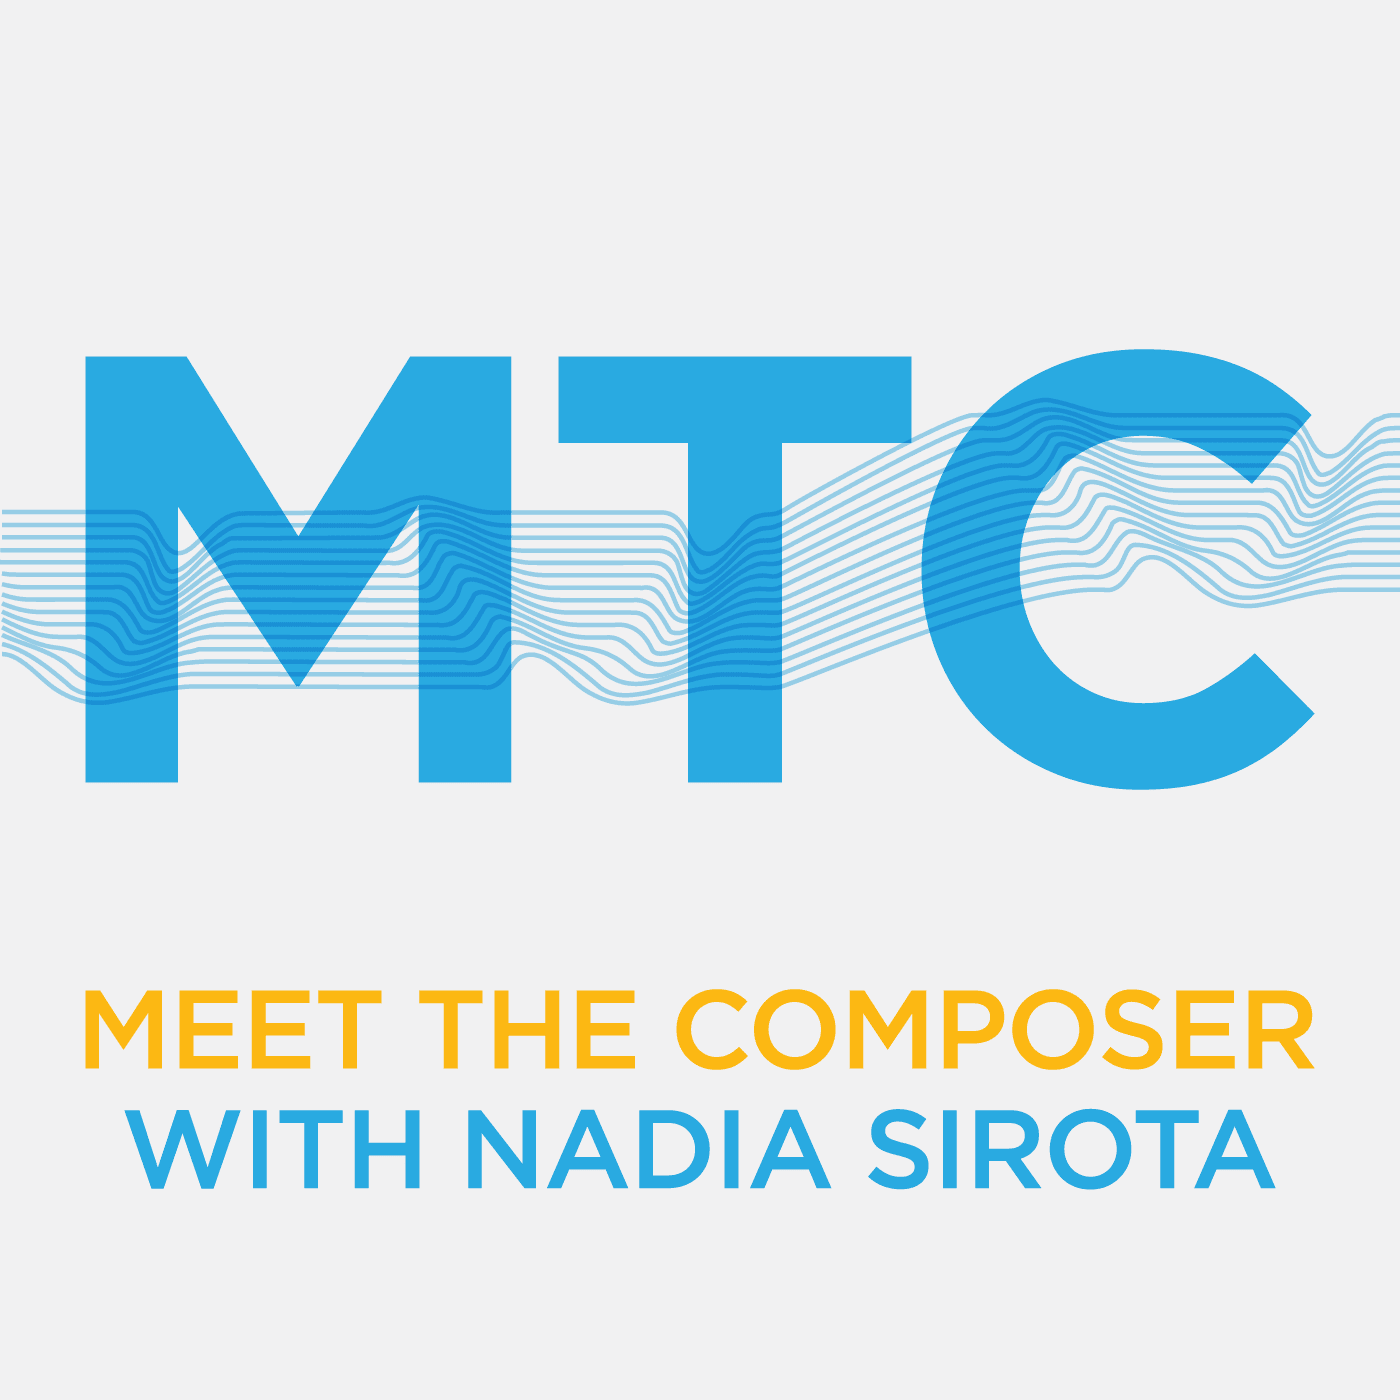 Meet the Composer